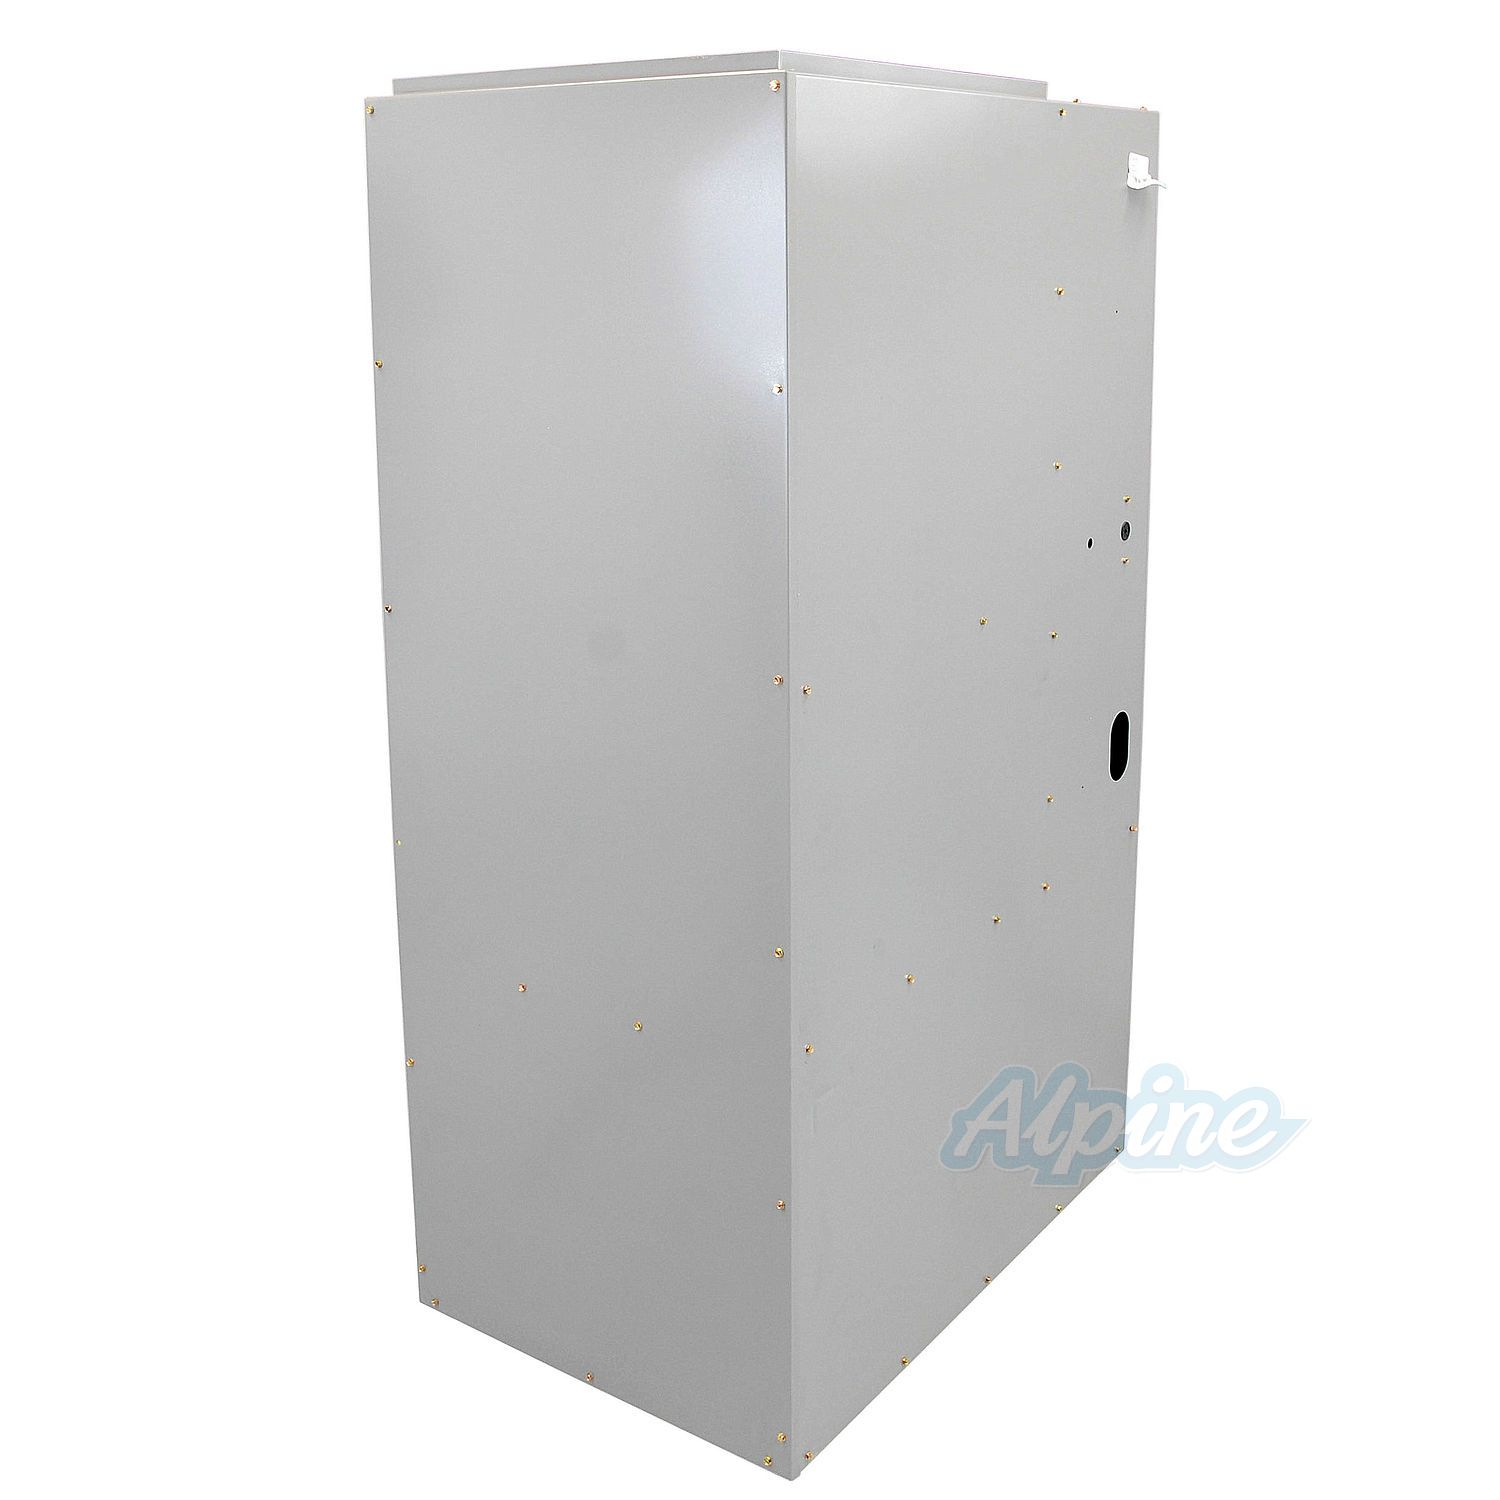 Blueridge BOL83UF HighBoy Upflow Oil Furnace 4